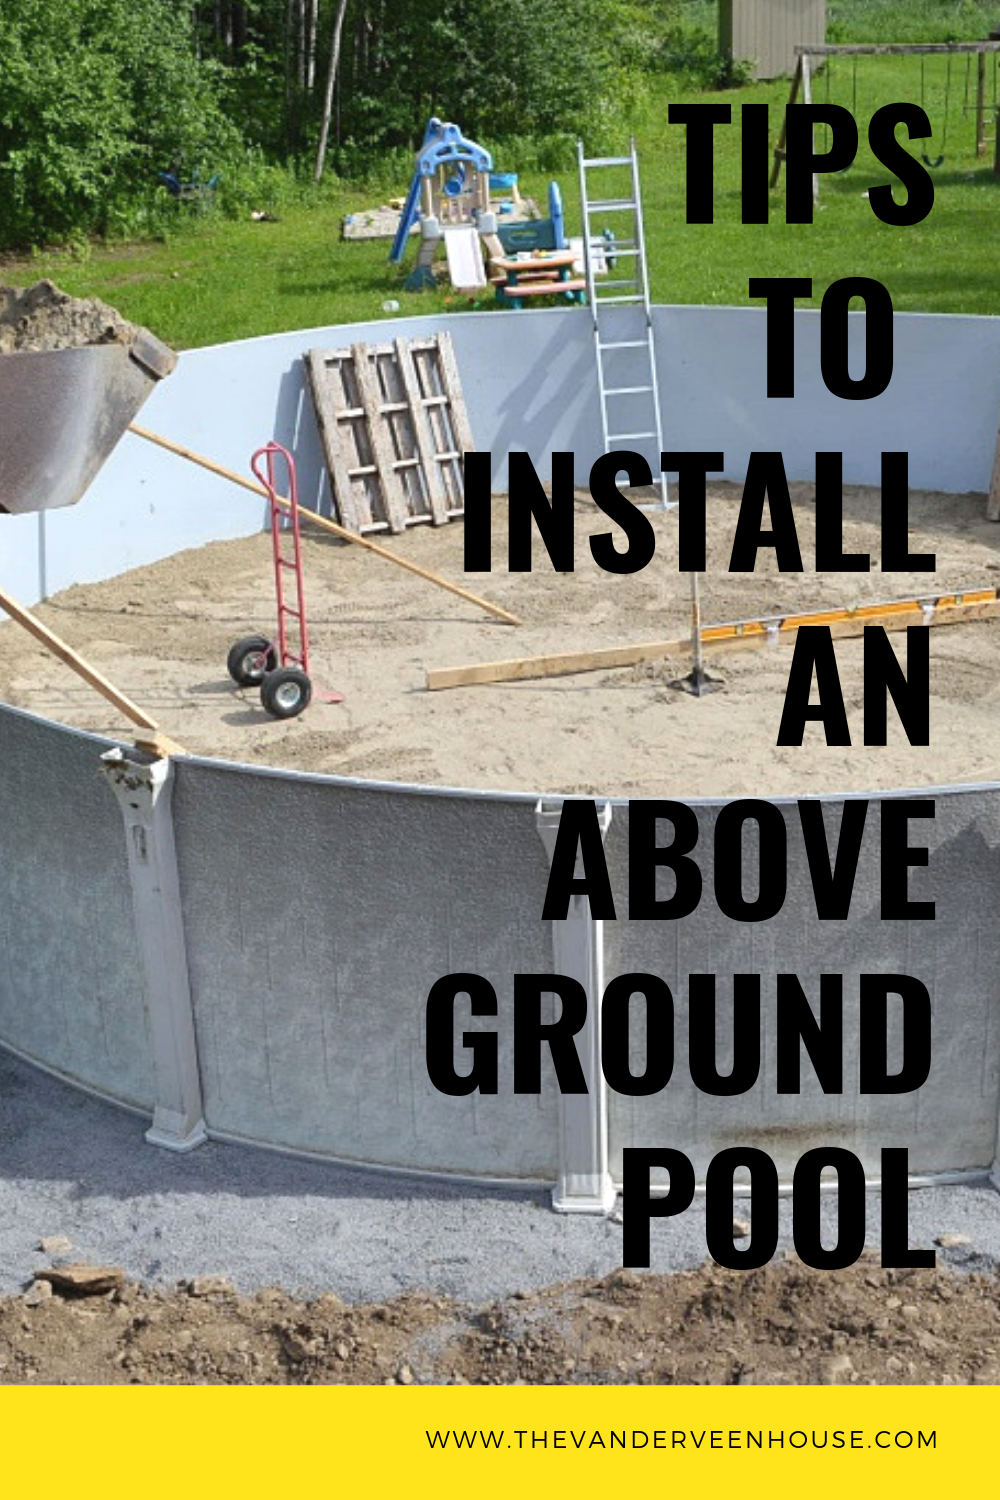 Top tips to install an above ground pool